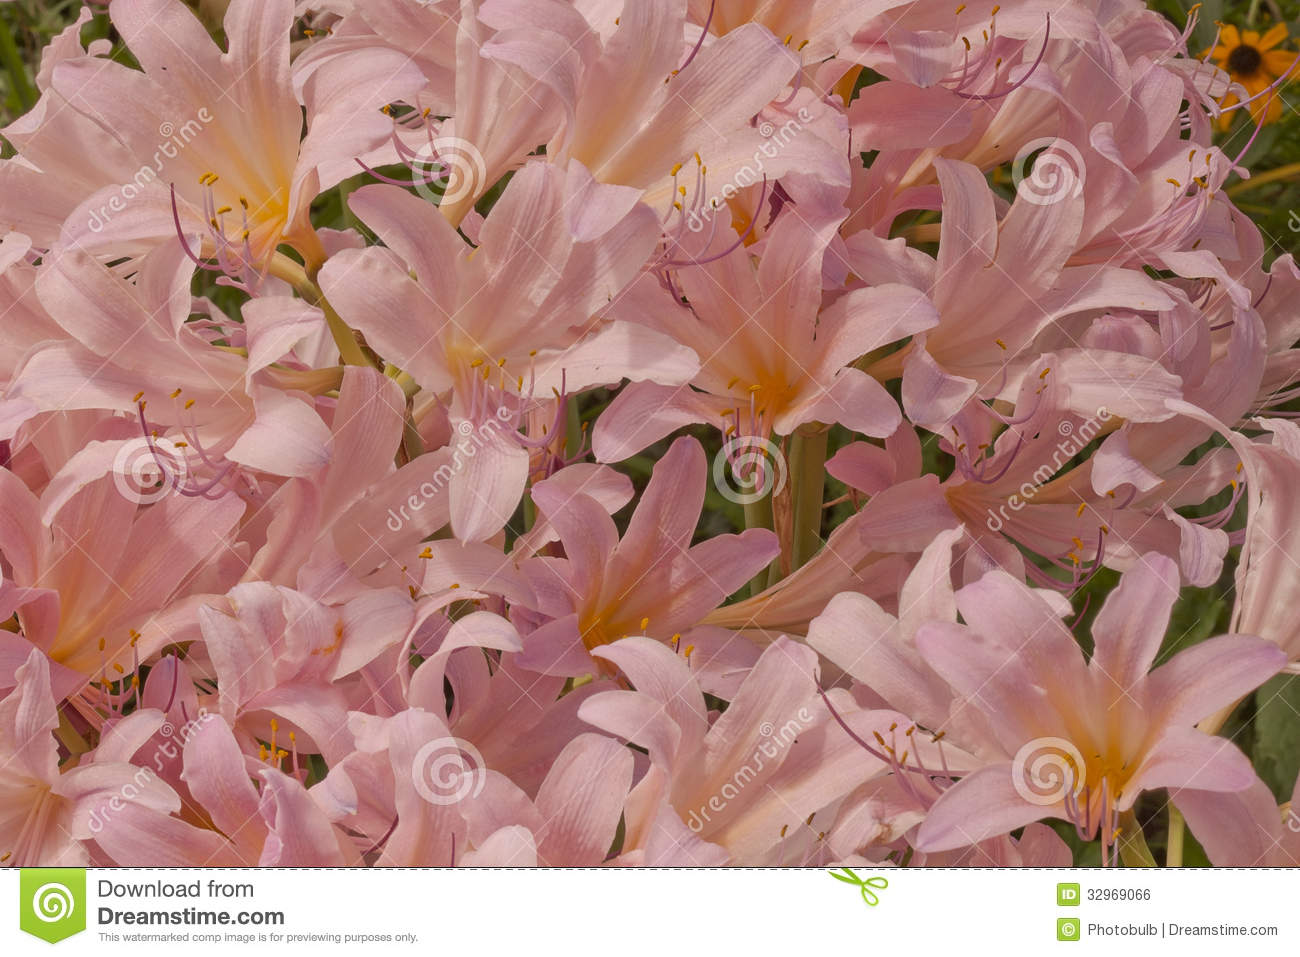 Sea of pink trumpets stock photo image of garden amaryllis 32969066 while this flower goes by many lily names surprise lily magic lily resurrection lily naked lady lazarus lily and naked lily its botanical name is mightylinksfo